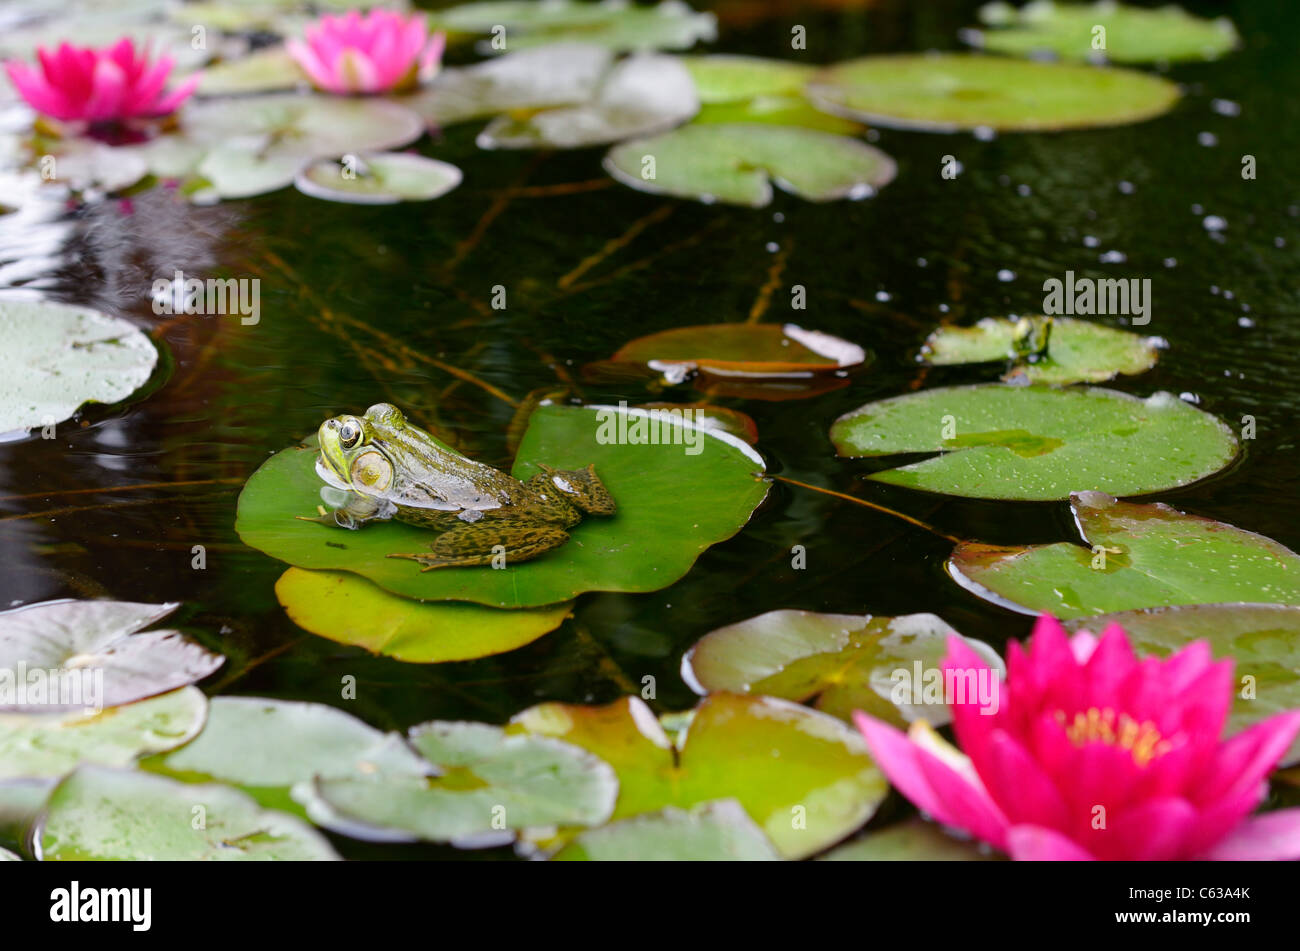 Green Frog Floating On A Water Lily Pad Leaf In A Pond